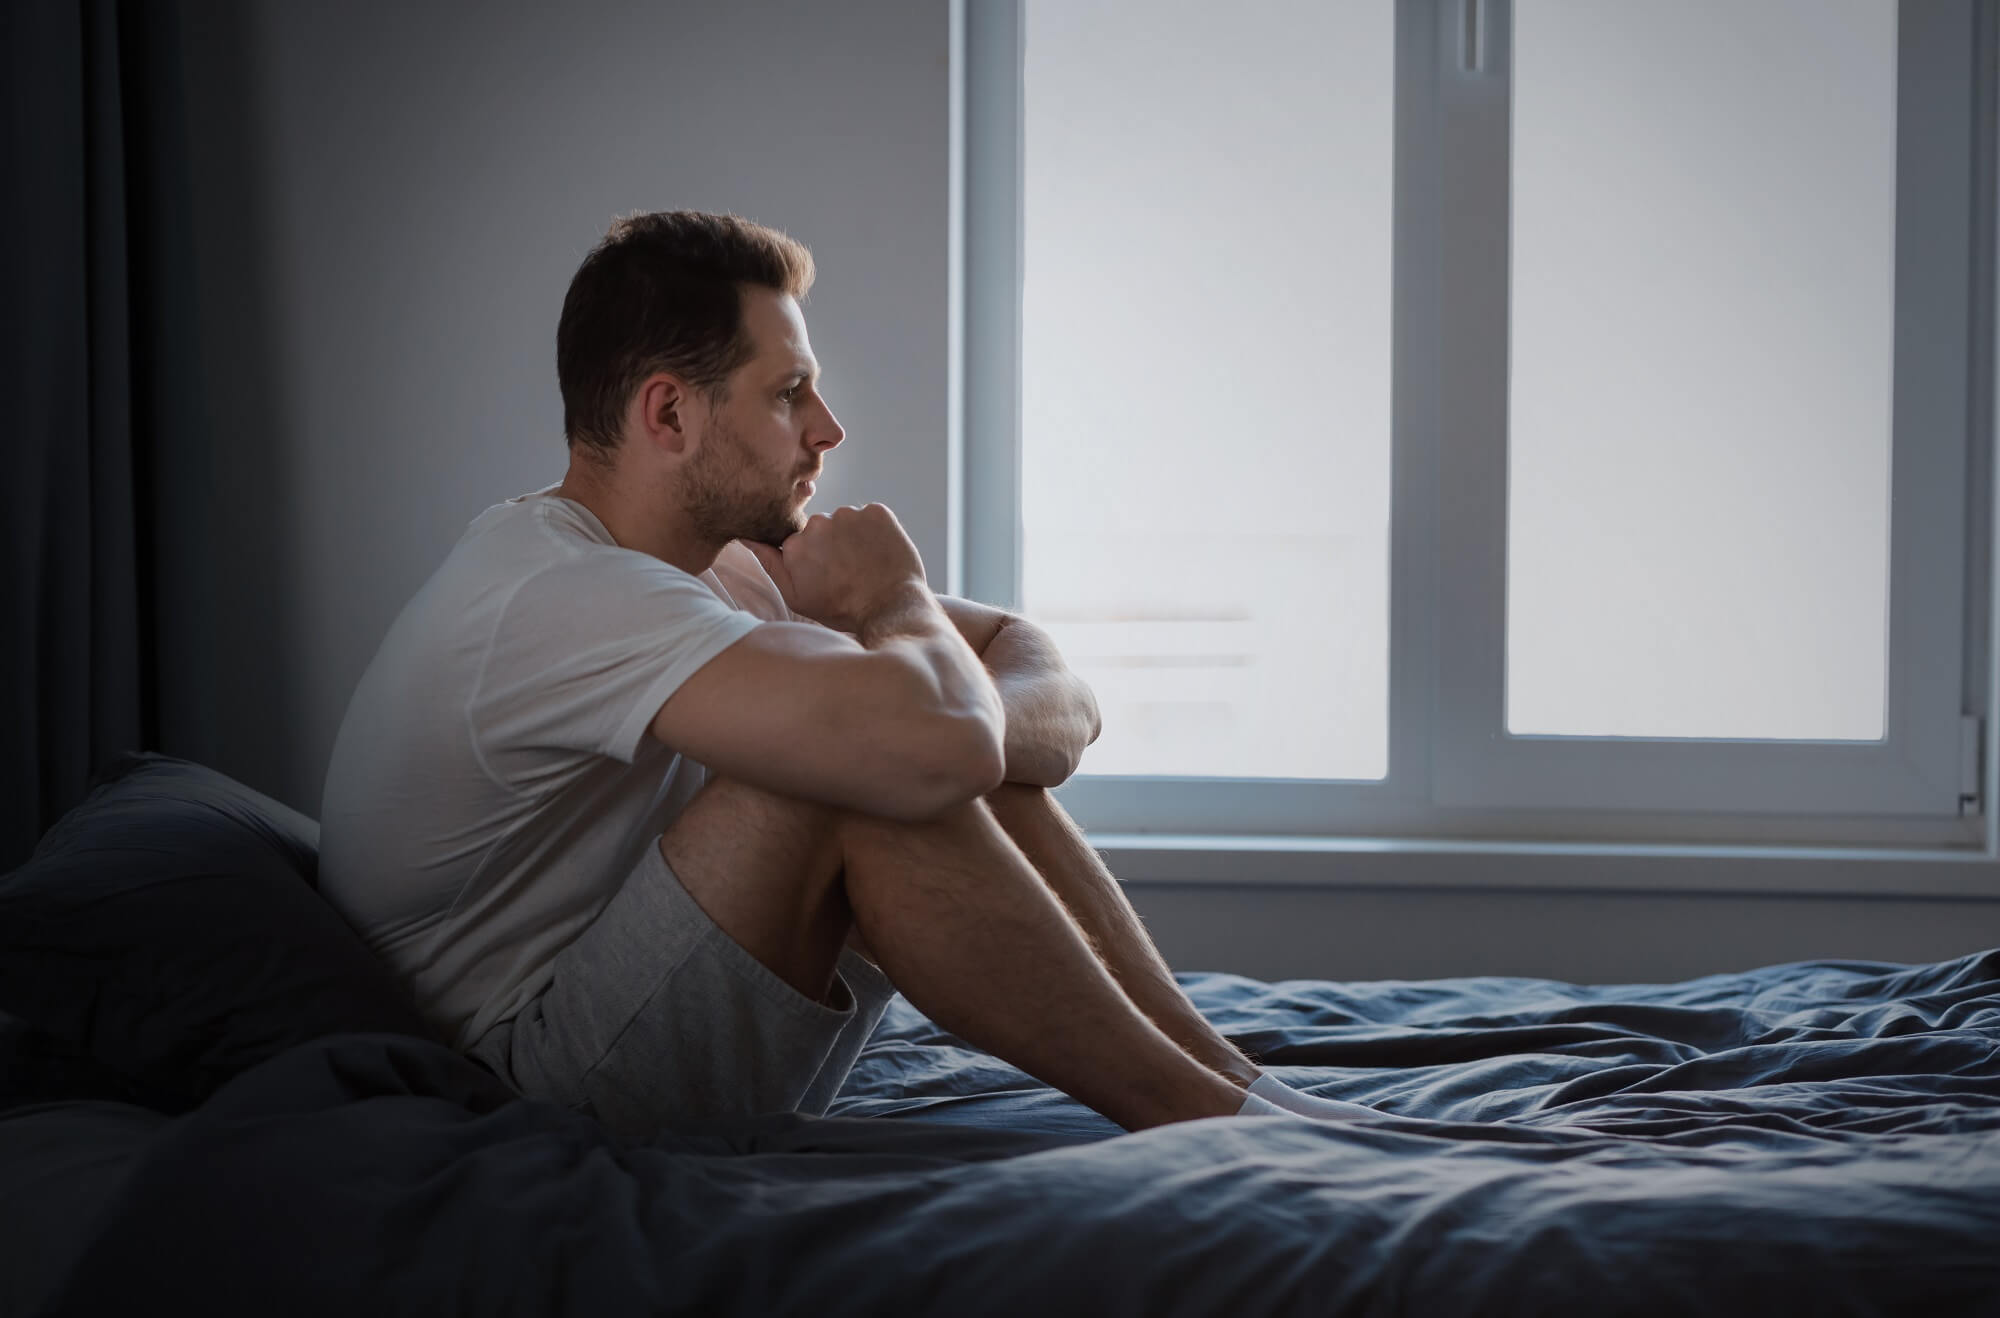 Depressed Man Thinking About Problems Sitting In Bed Indoors